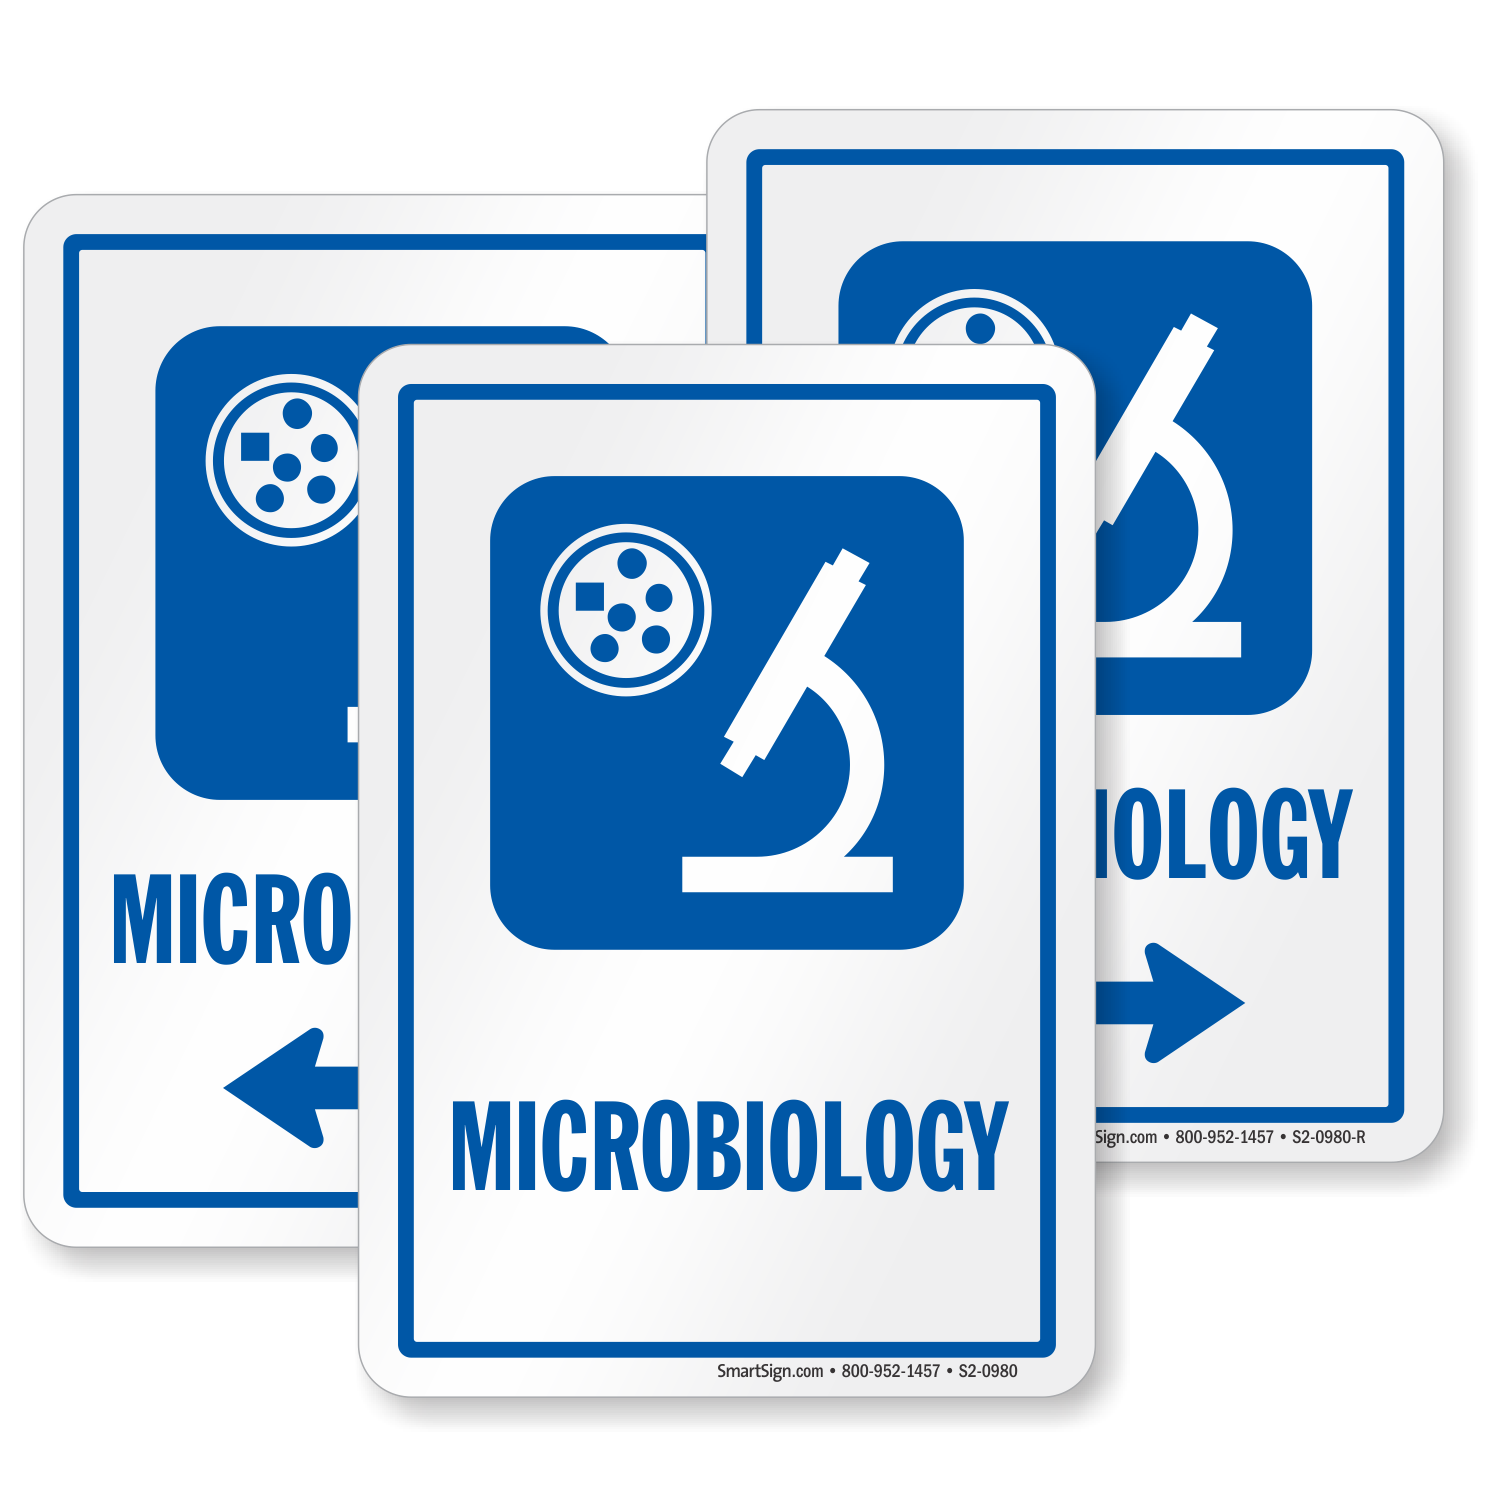 Microbiology Signs Microbiology Door Signs